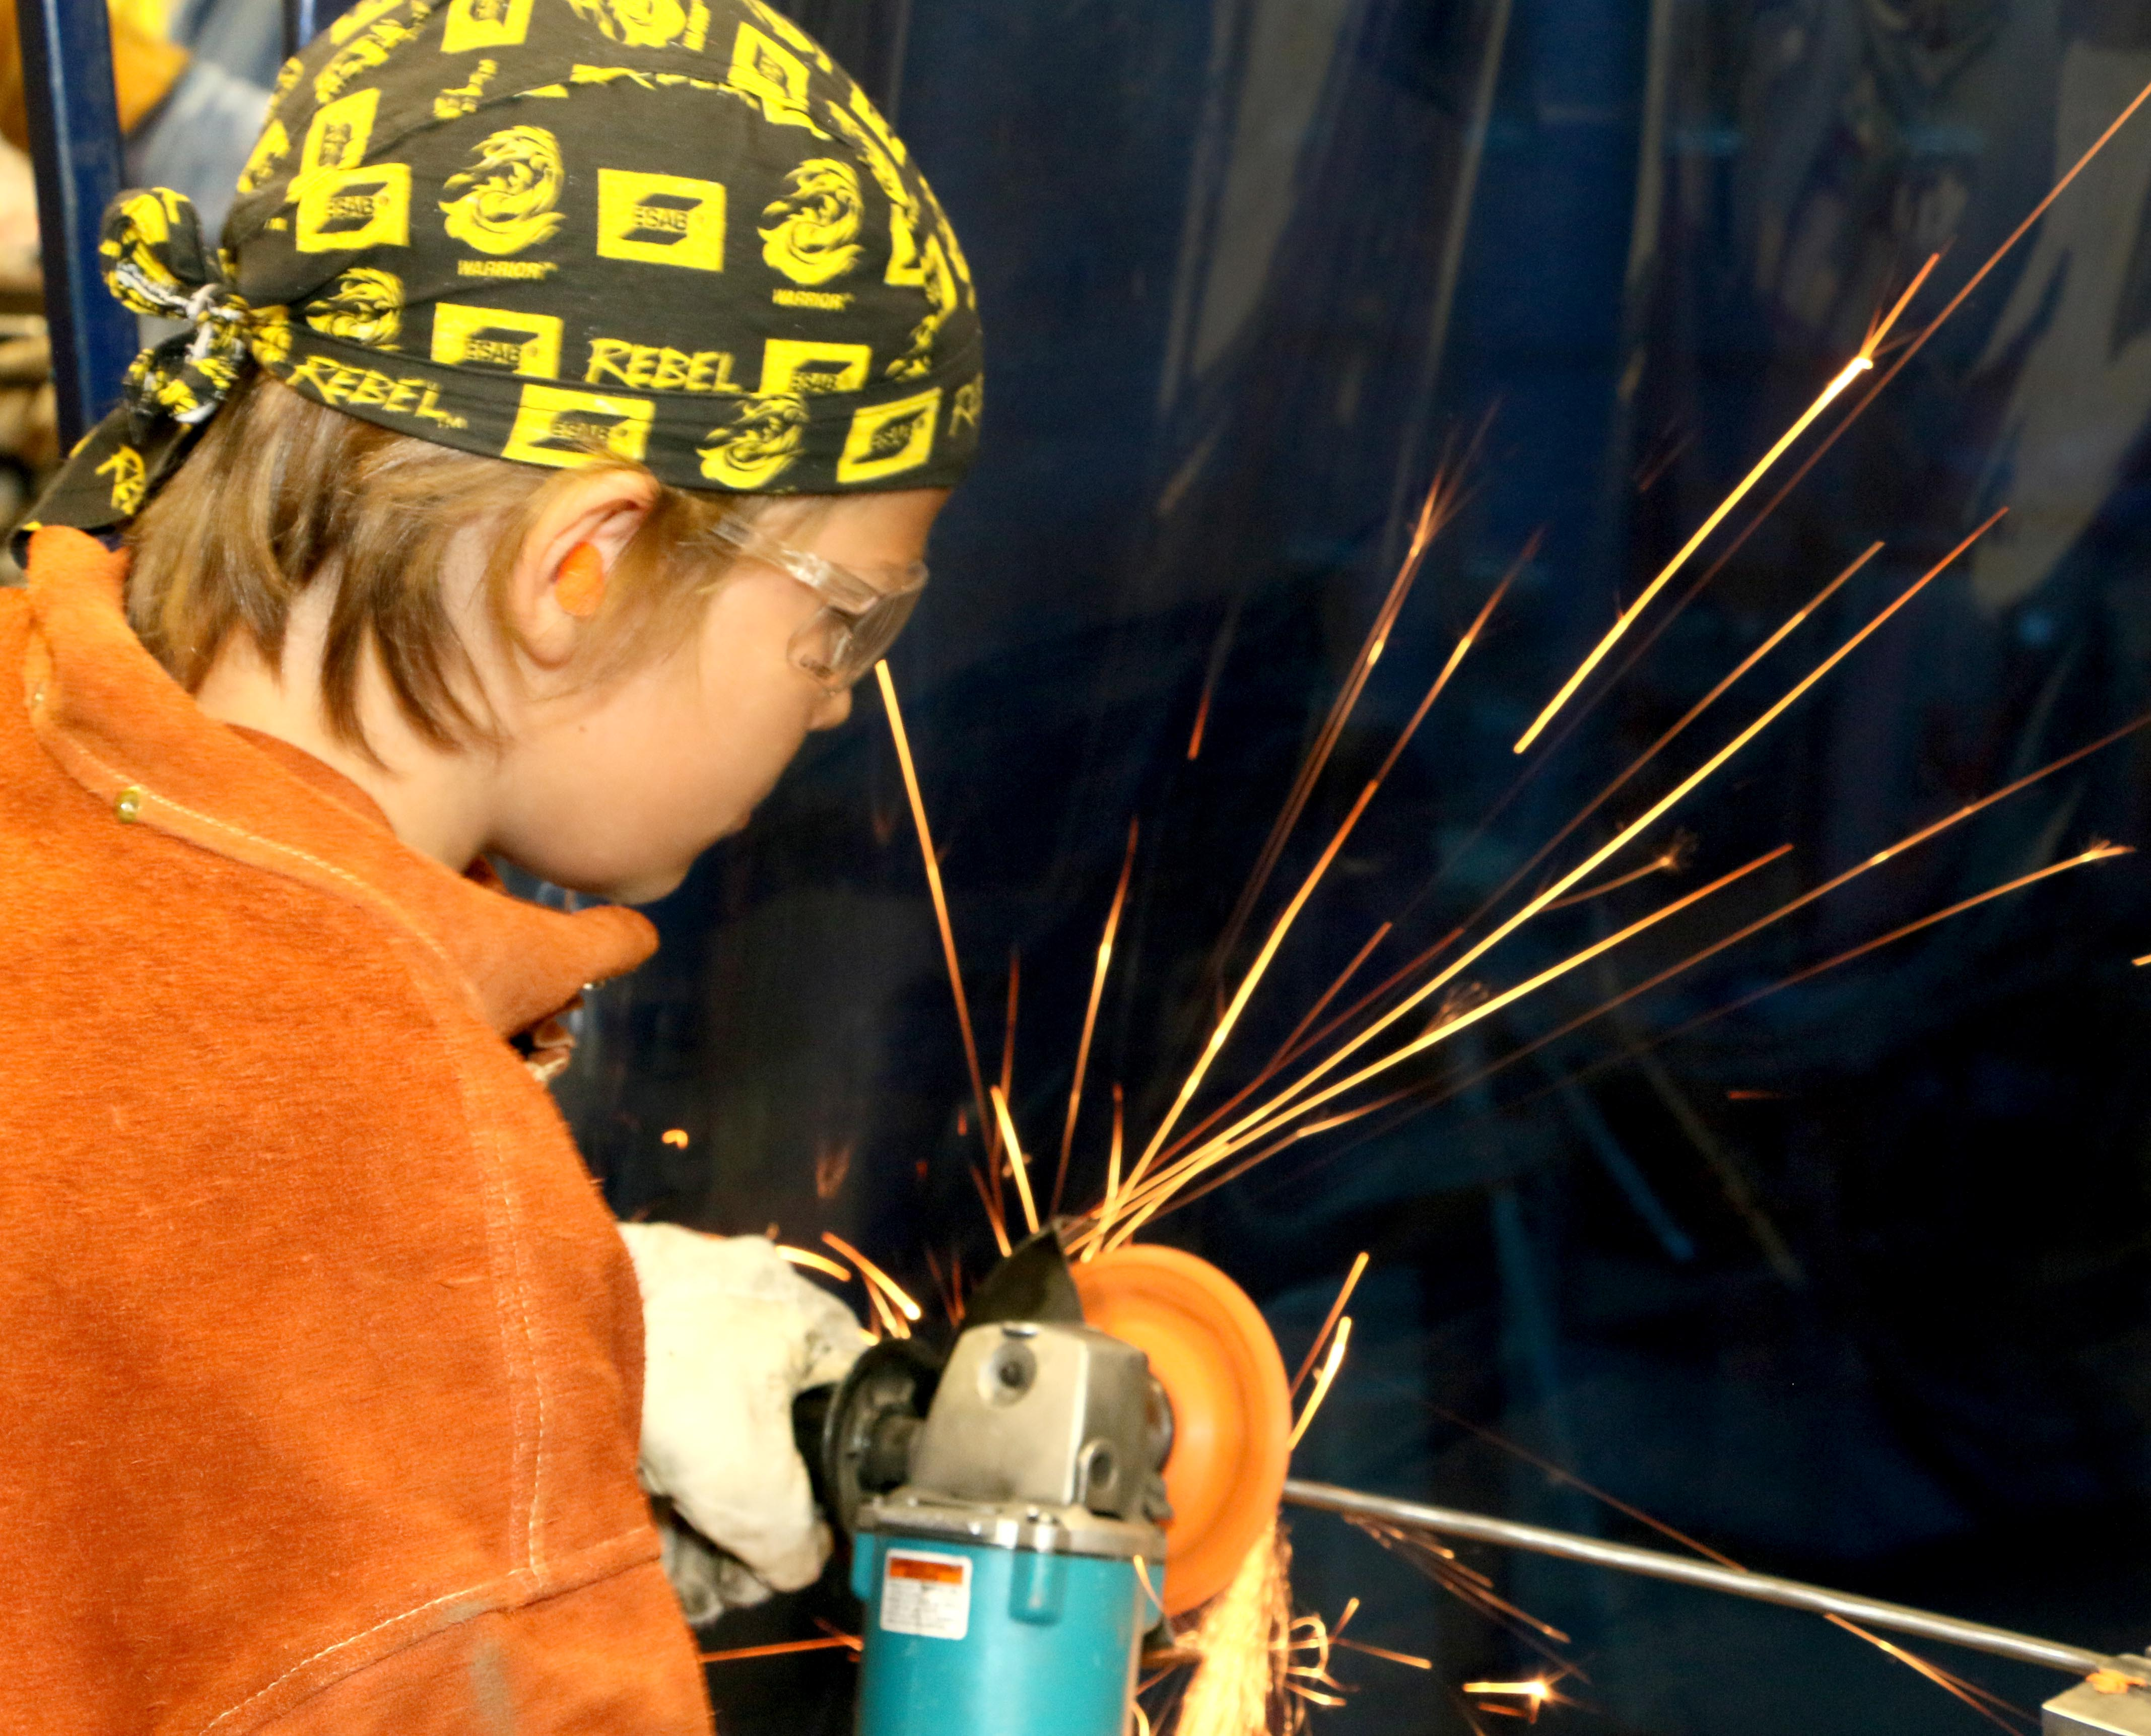 Welding camp safety protection